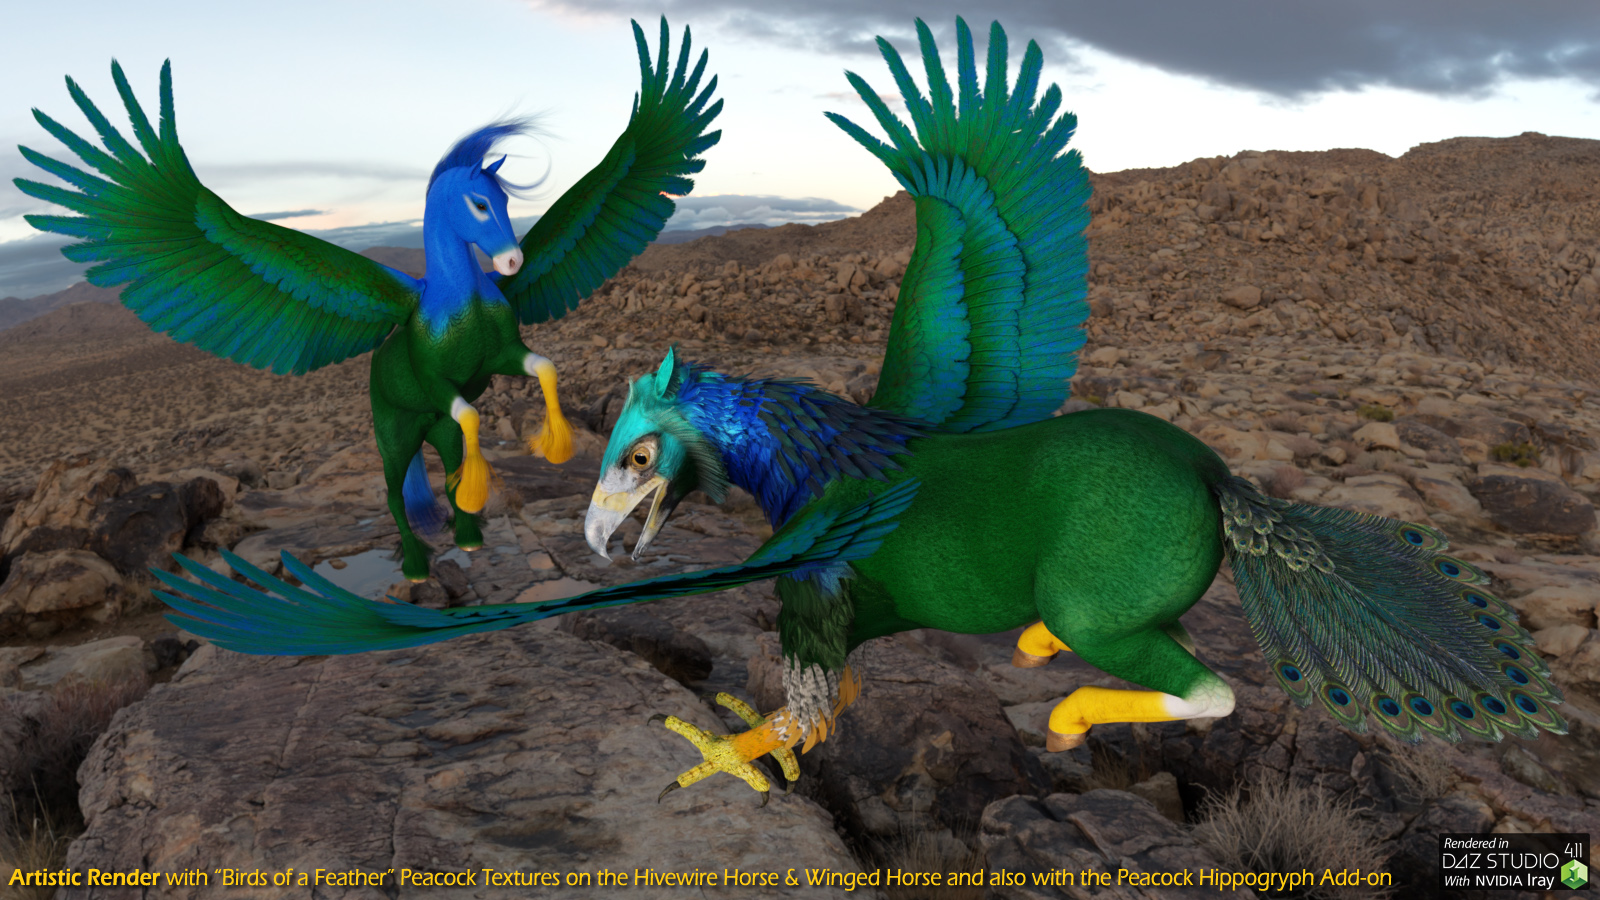 Peacock Winged Horse and Hippogryph